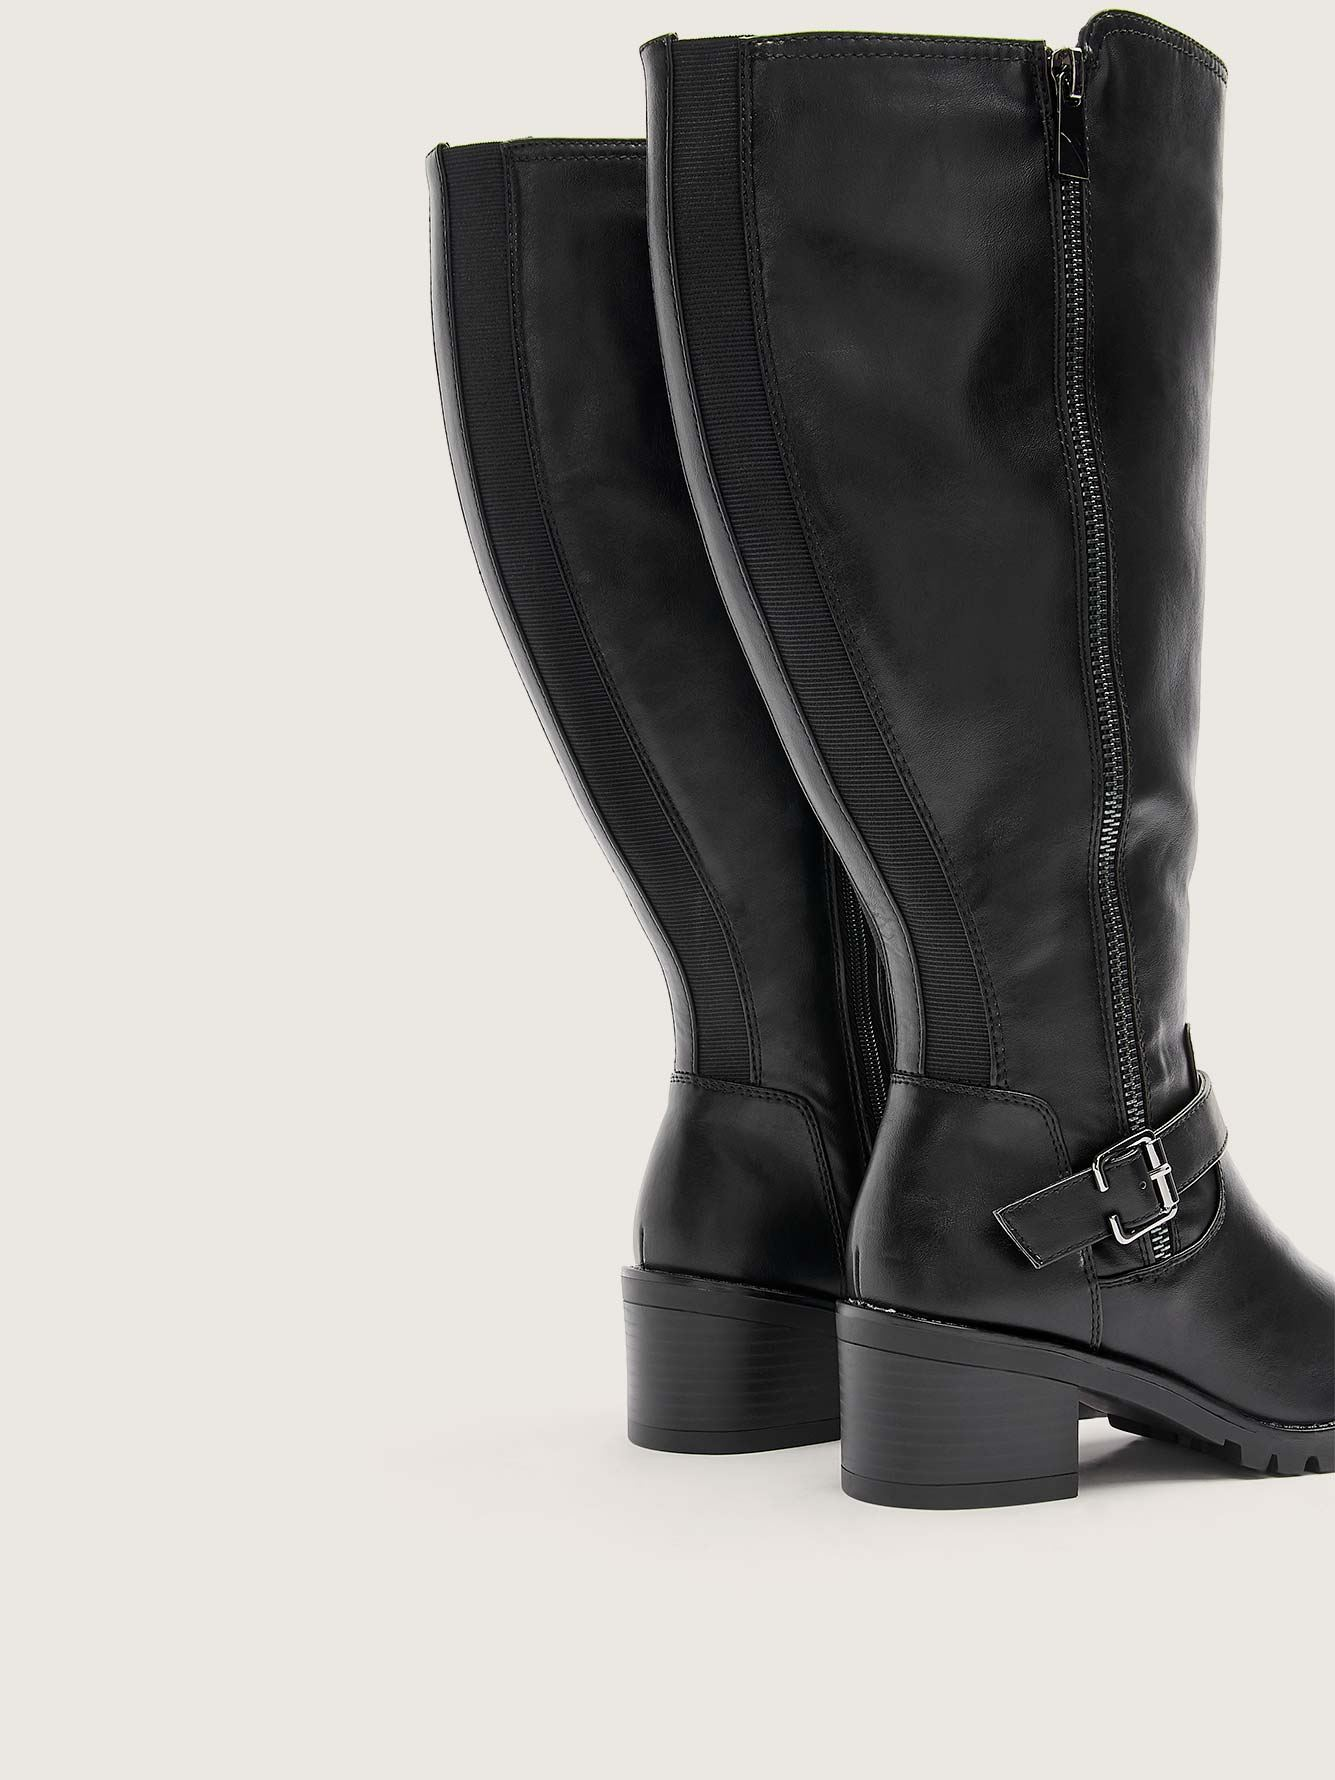 Wide Water-resistant Tall Boot - Addition Elle